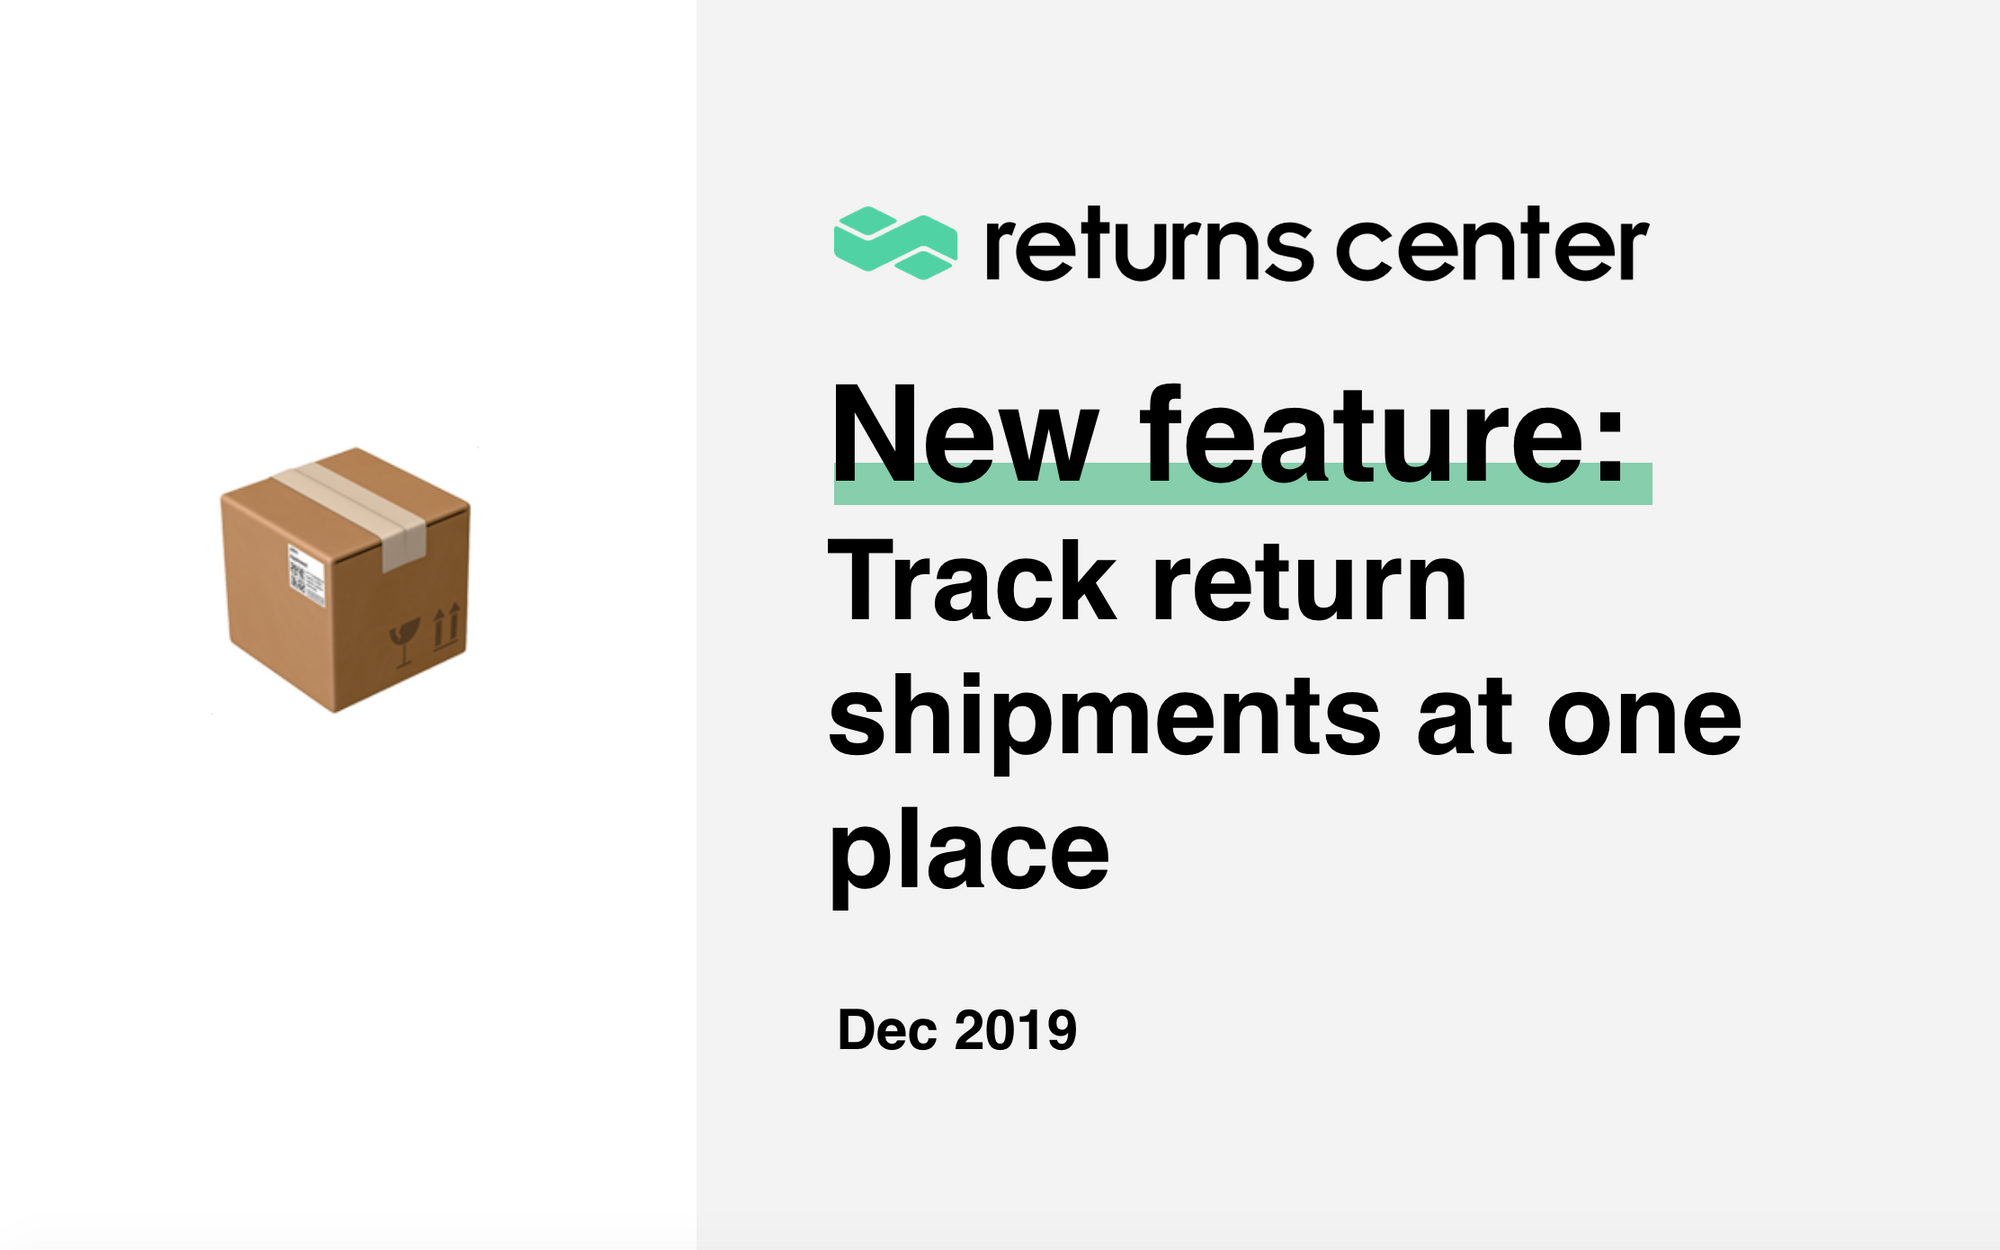 New feature: Track return shipments at one place